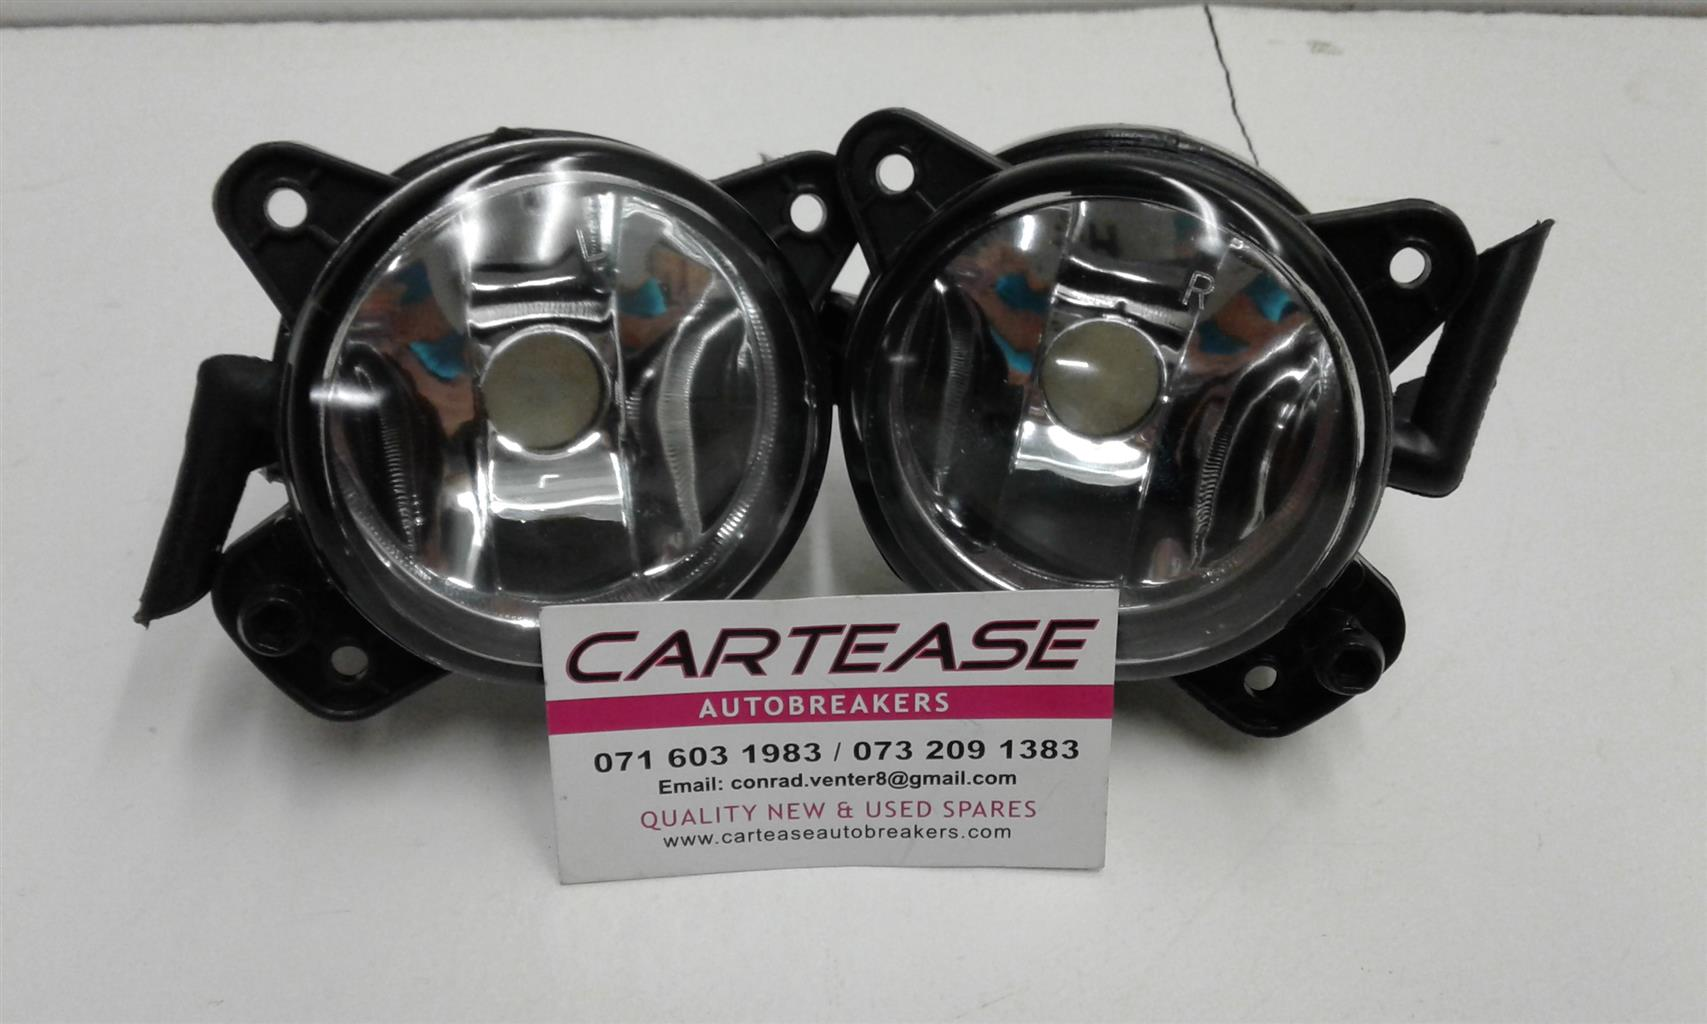 Cartease Auto Breakers